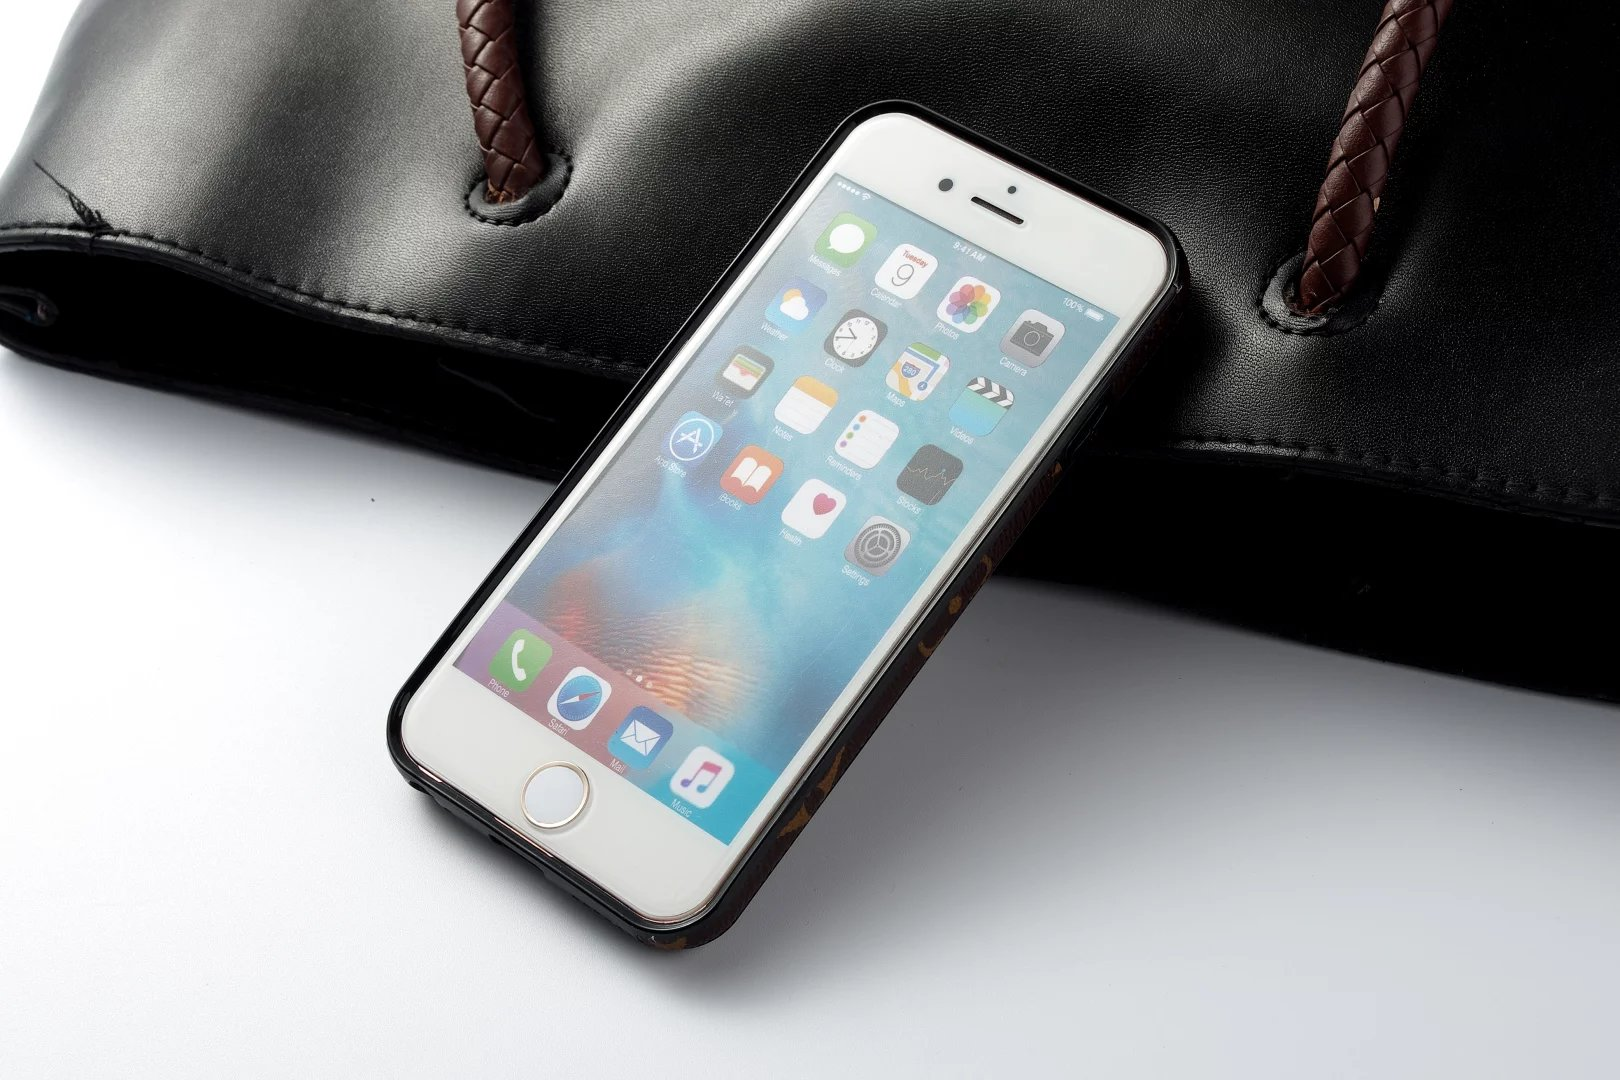 edle iphone hüllen iphone hüllen bestellen Gucci iphone 8 hüllen leder hülle iphone 8 handyhülle mit foto iphone 8 handy schutzhülle 8lber machen iphone zoll iphone 8 werbung schutzhülle designen